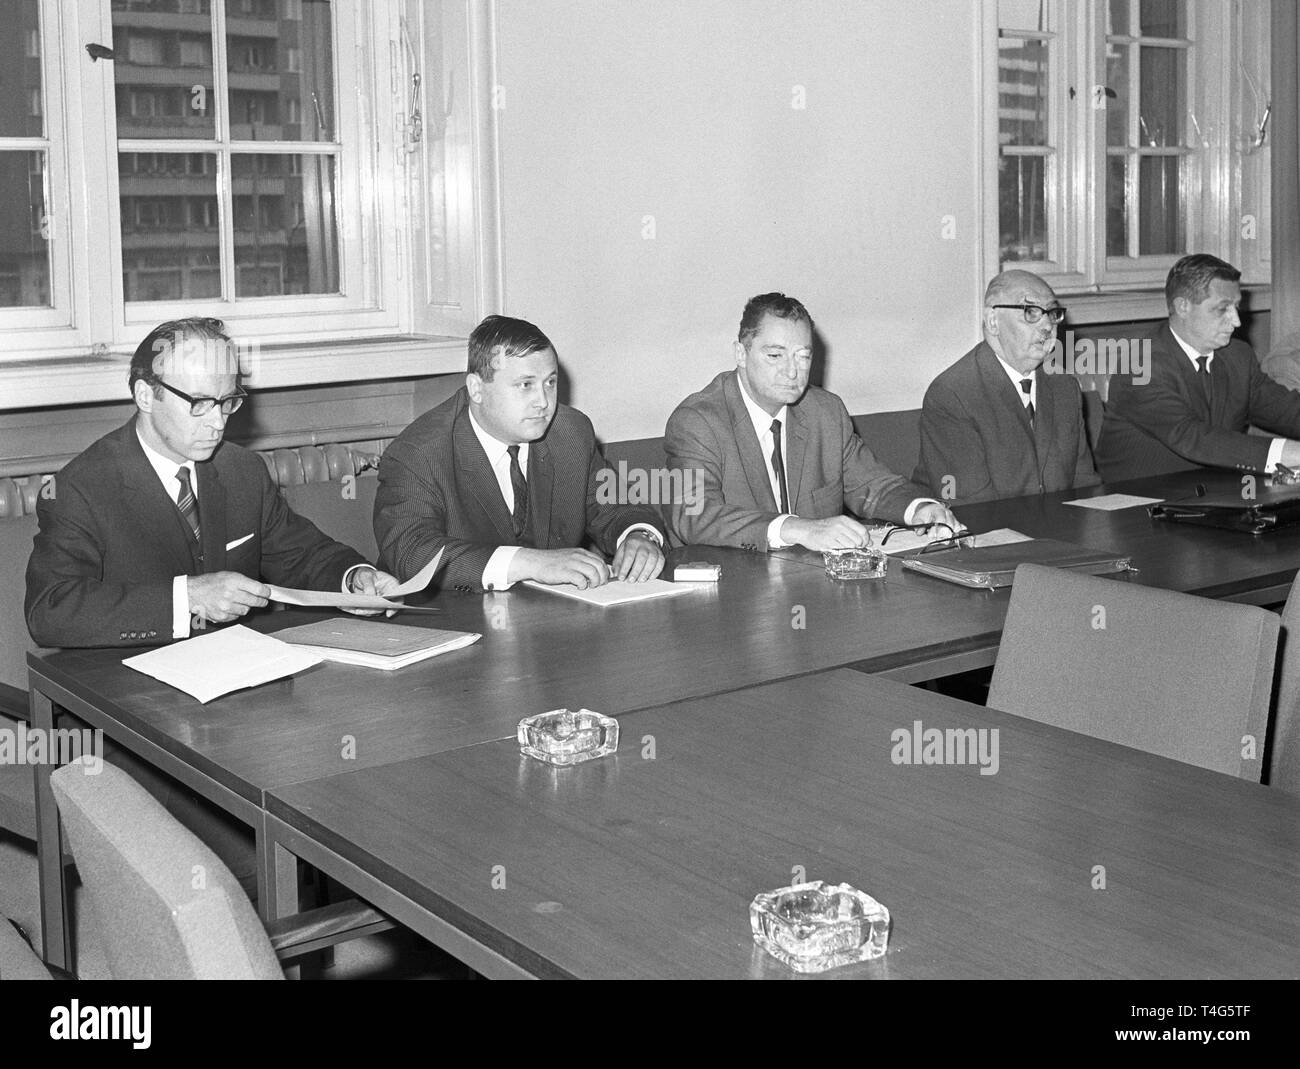 Gerd Loeffler (SPD), Winfried Tromp (CDU), Karl Buckow (CDU), Prof. Dr. Hans Reif (FDP) and Lothar Vortisch (SPD) (l-r) during a meeting of the parliamentary investigation committee on 15 June 1967 to examine the events during the Shah's visit. Student Benno Ohnesorg was shot and 75 people, among them 42 demonstrators and 33 policemen,  were injured. | usage worldwide - Stock Image